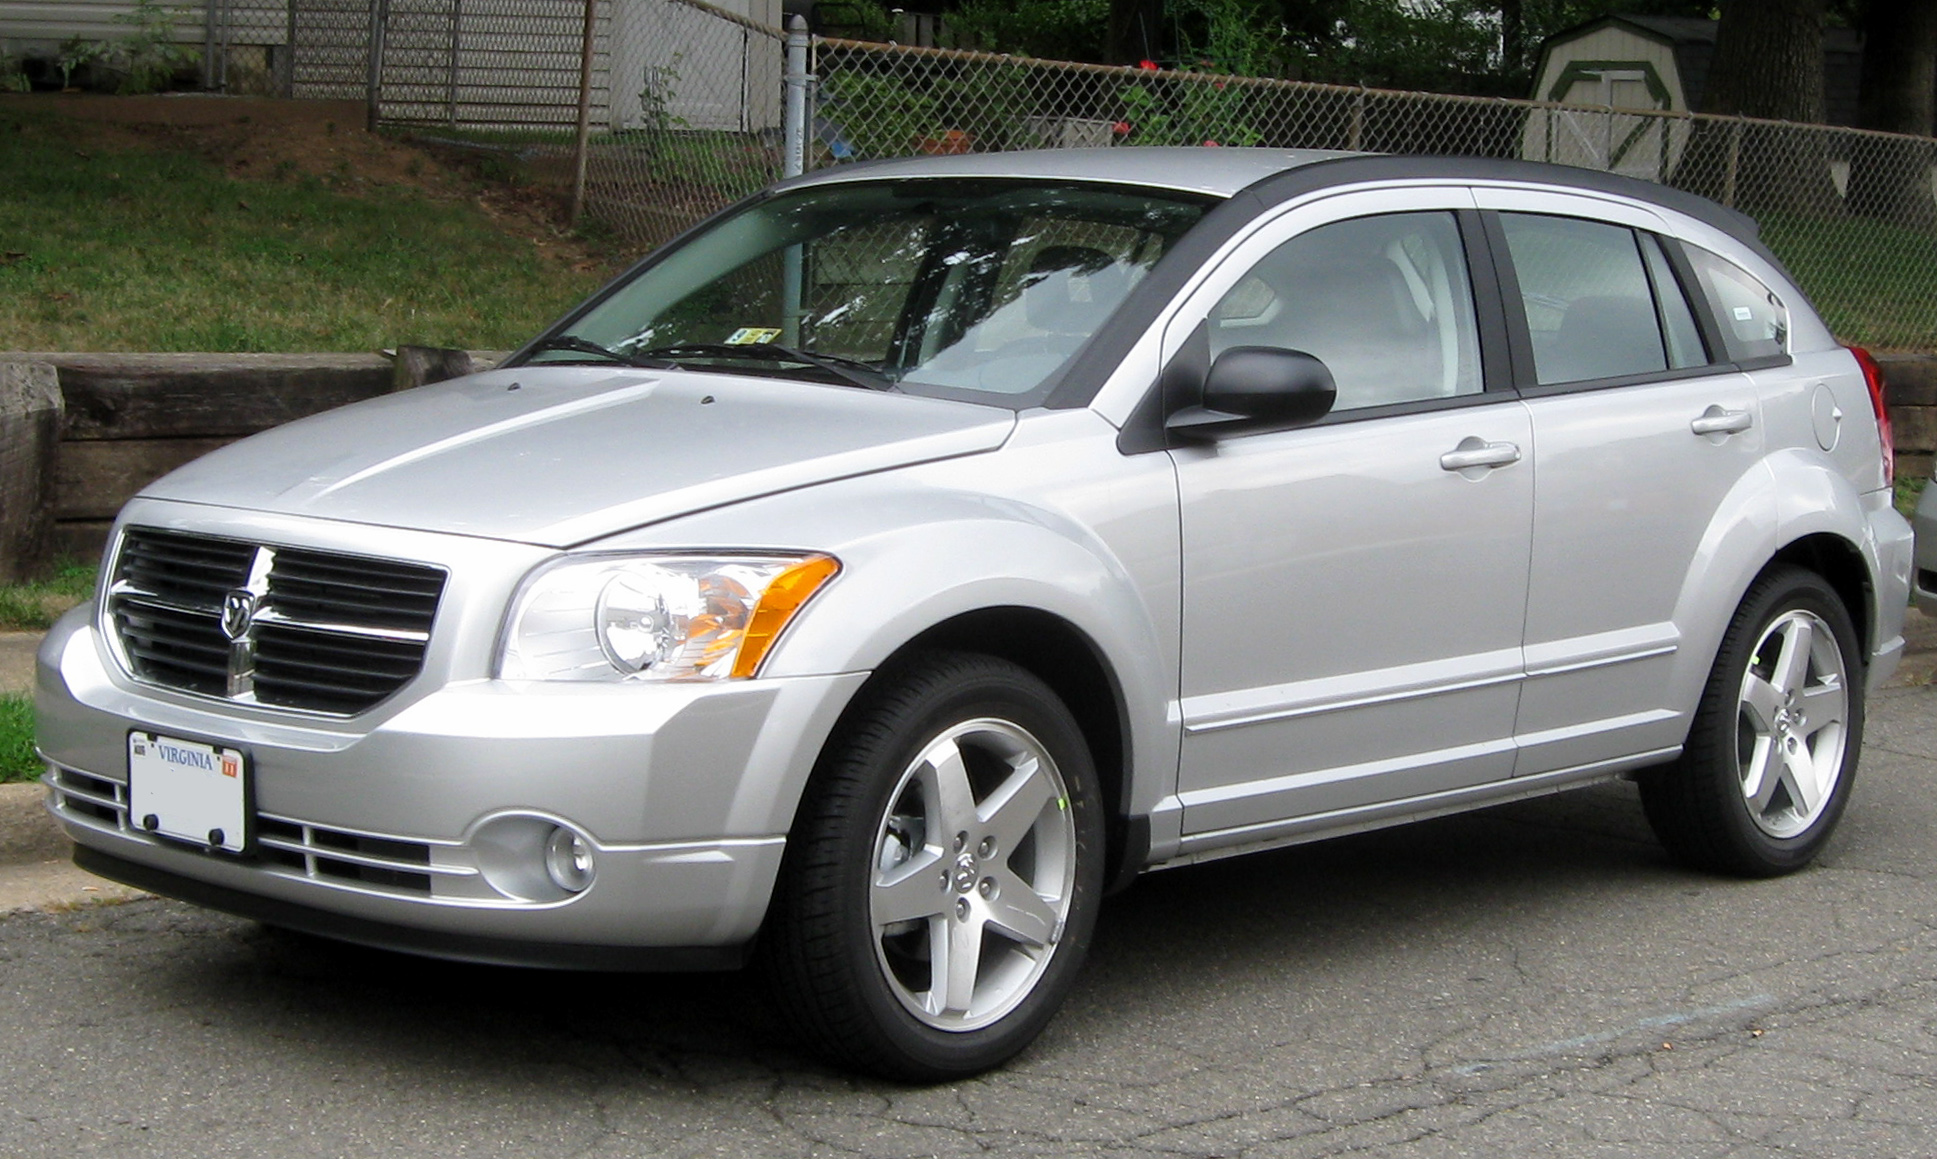 07 dodge caliber starter wiring diagram plot of a graphic novel 73 ford turn signal free engine image for